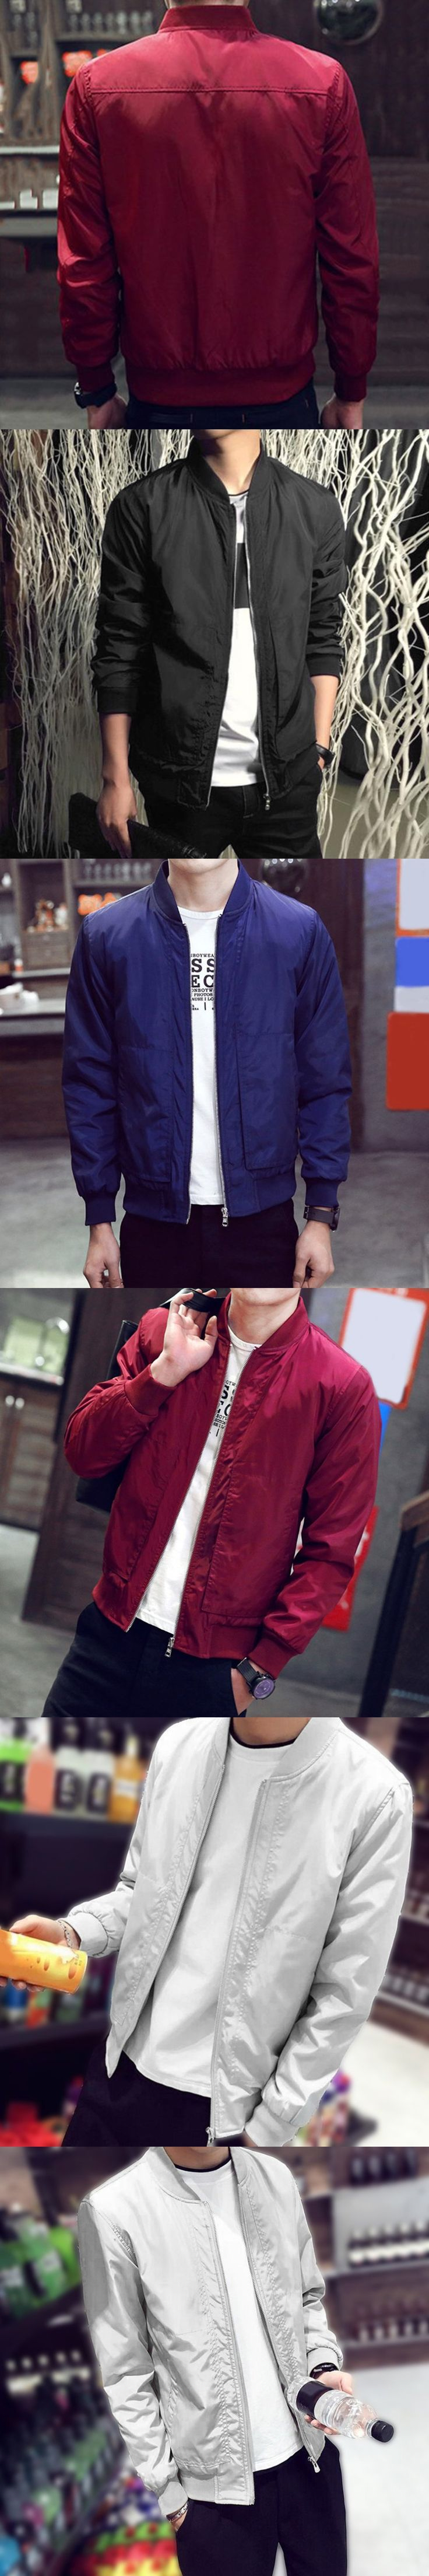 2017 New Spring Autumn Men's Jackets Thin Solid Fashion Short Coats Male Casual Slim Stand Collar Bomber Jacket Men Overcoat 4XL